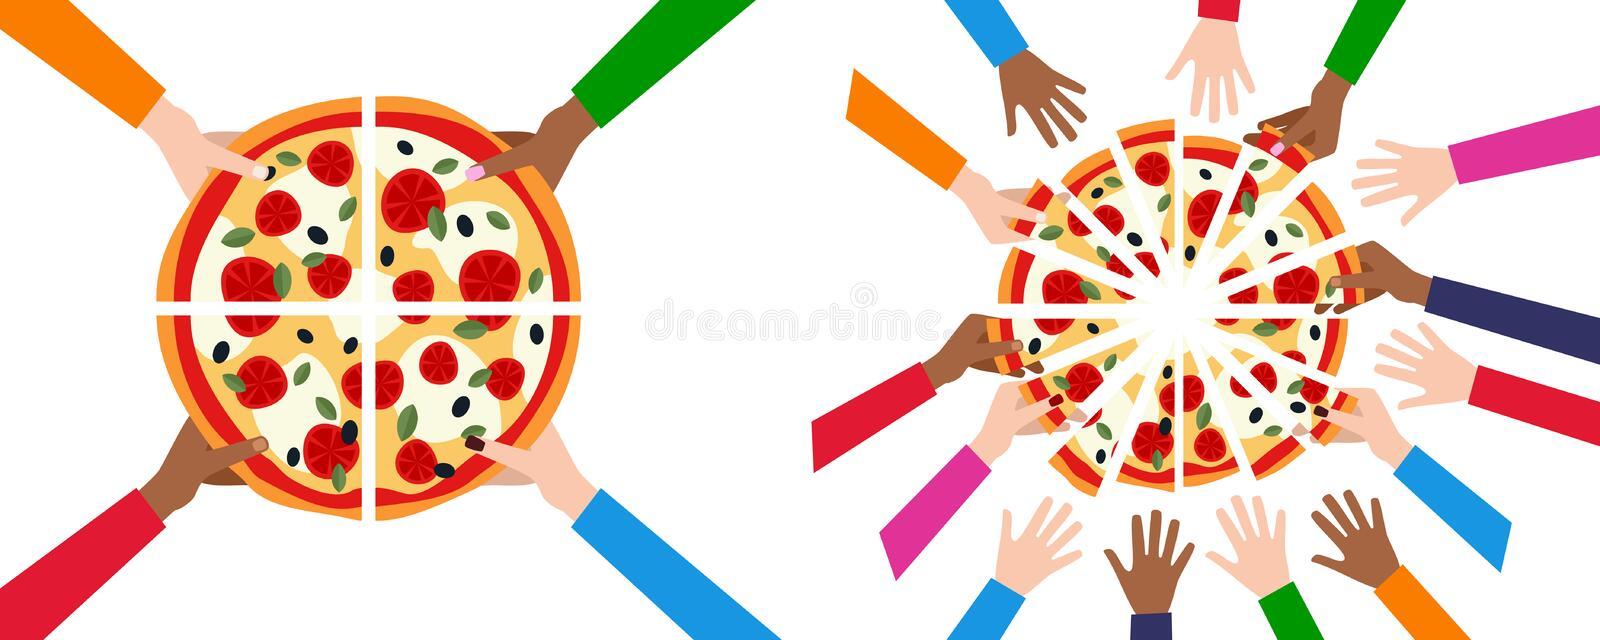 Dividing Pizza in 4 or 16 Slices & Friends vector illustration